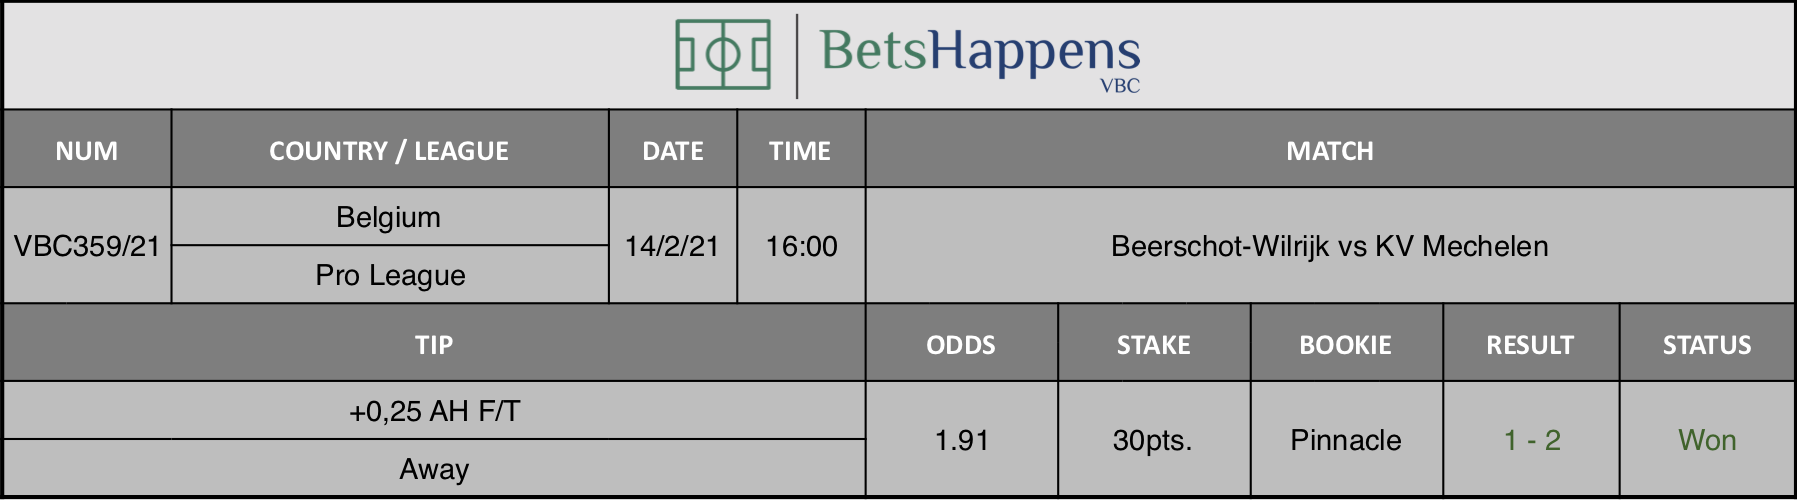 Results of our tip for the Beerschot-Wilrijk vs KV Mechelen match where +0,25 AH F/T - Away is recommended.